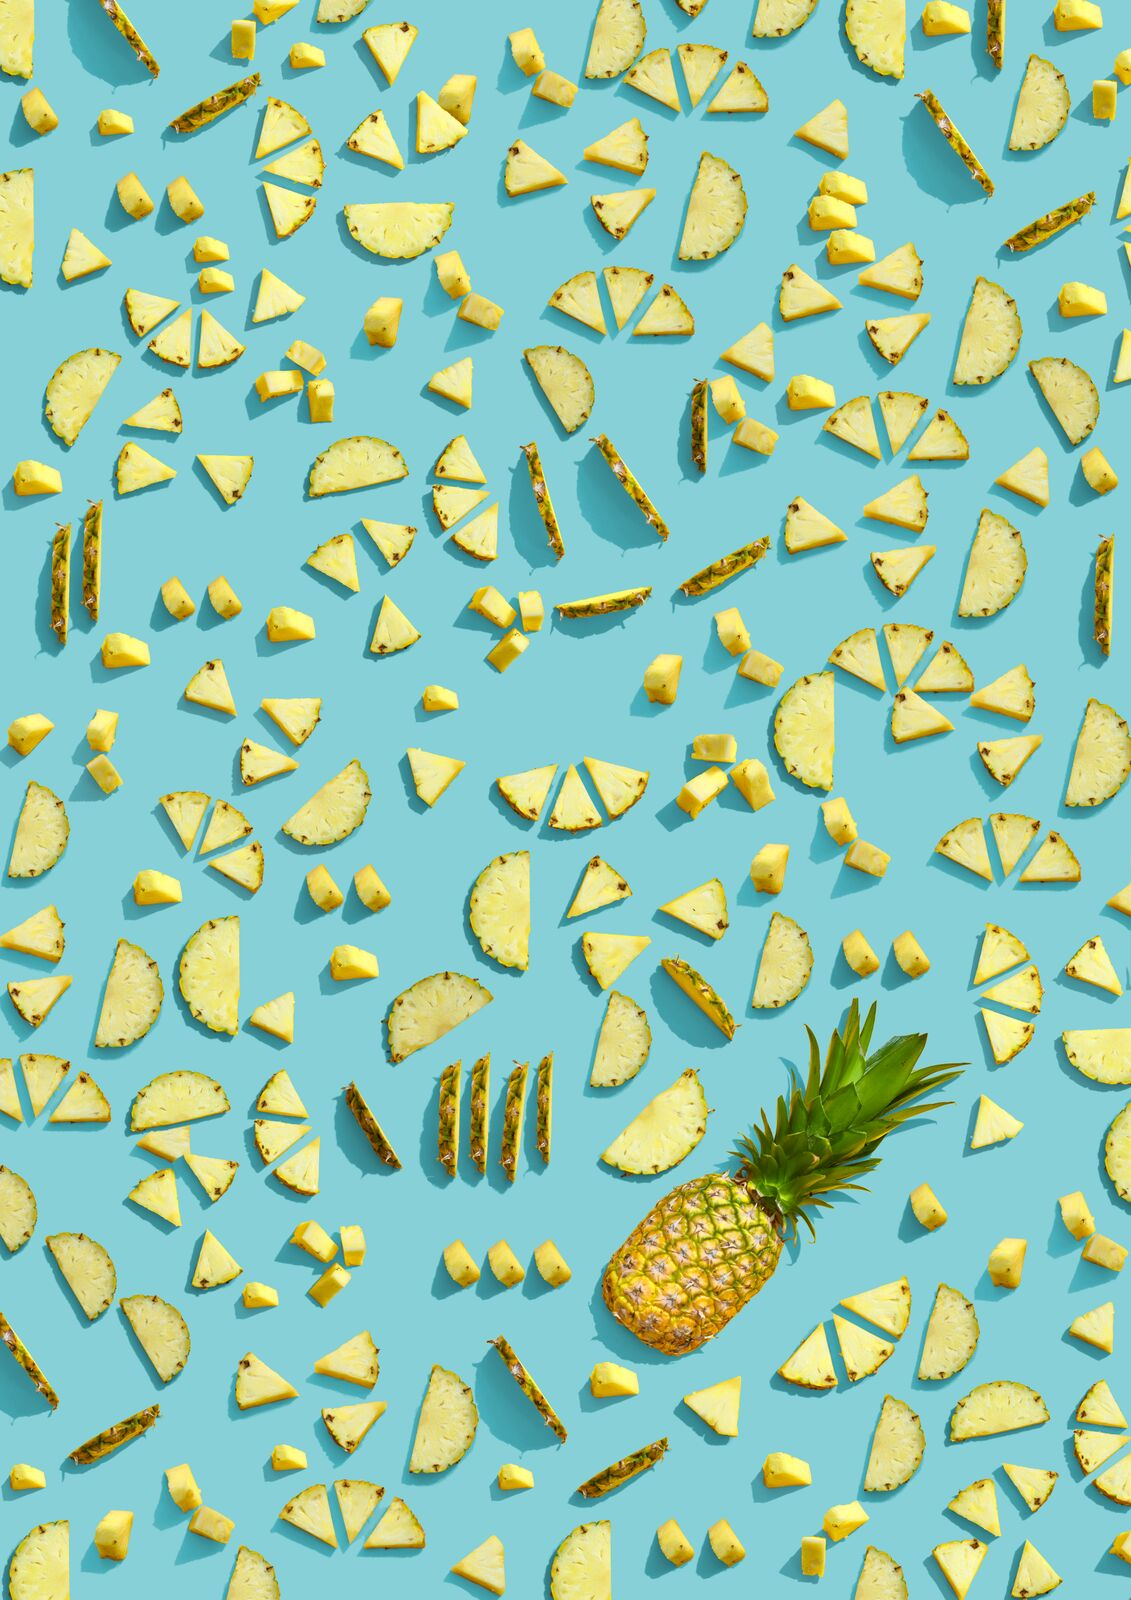 Pineapple Slices in Teal Background